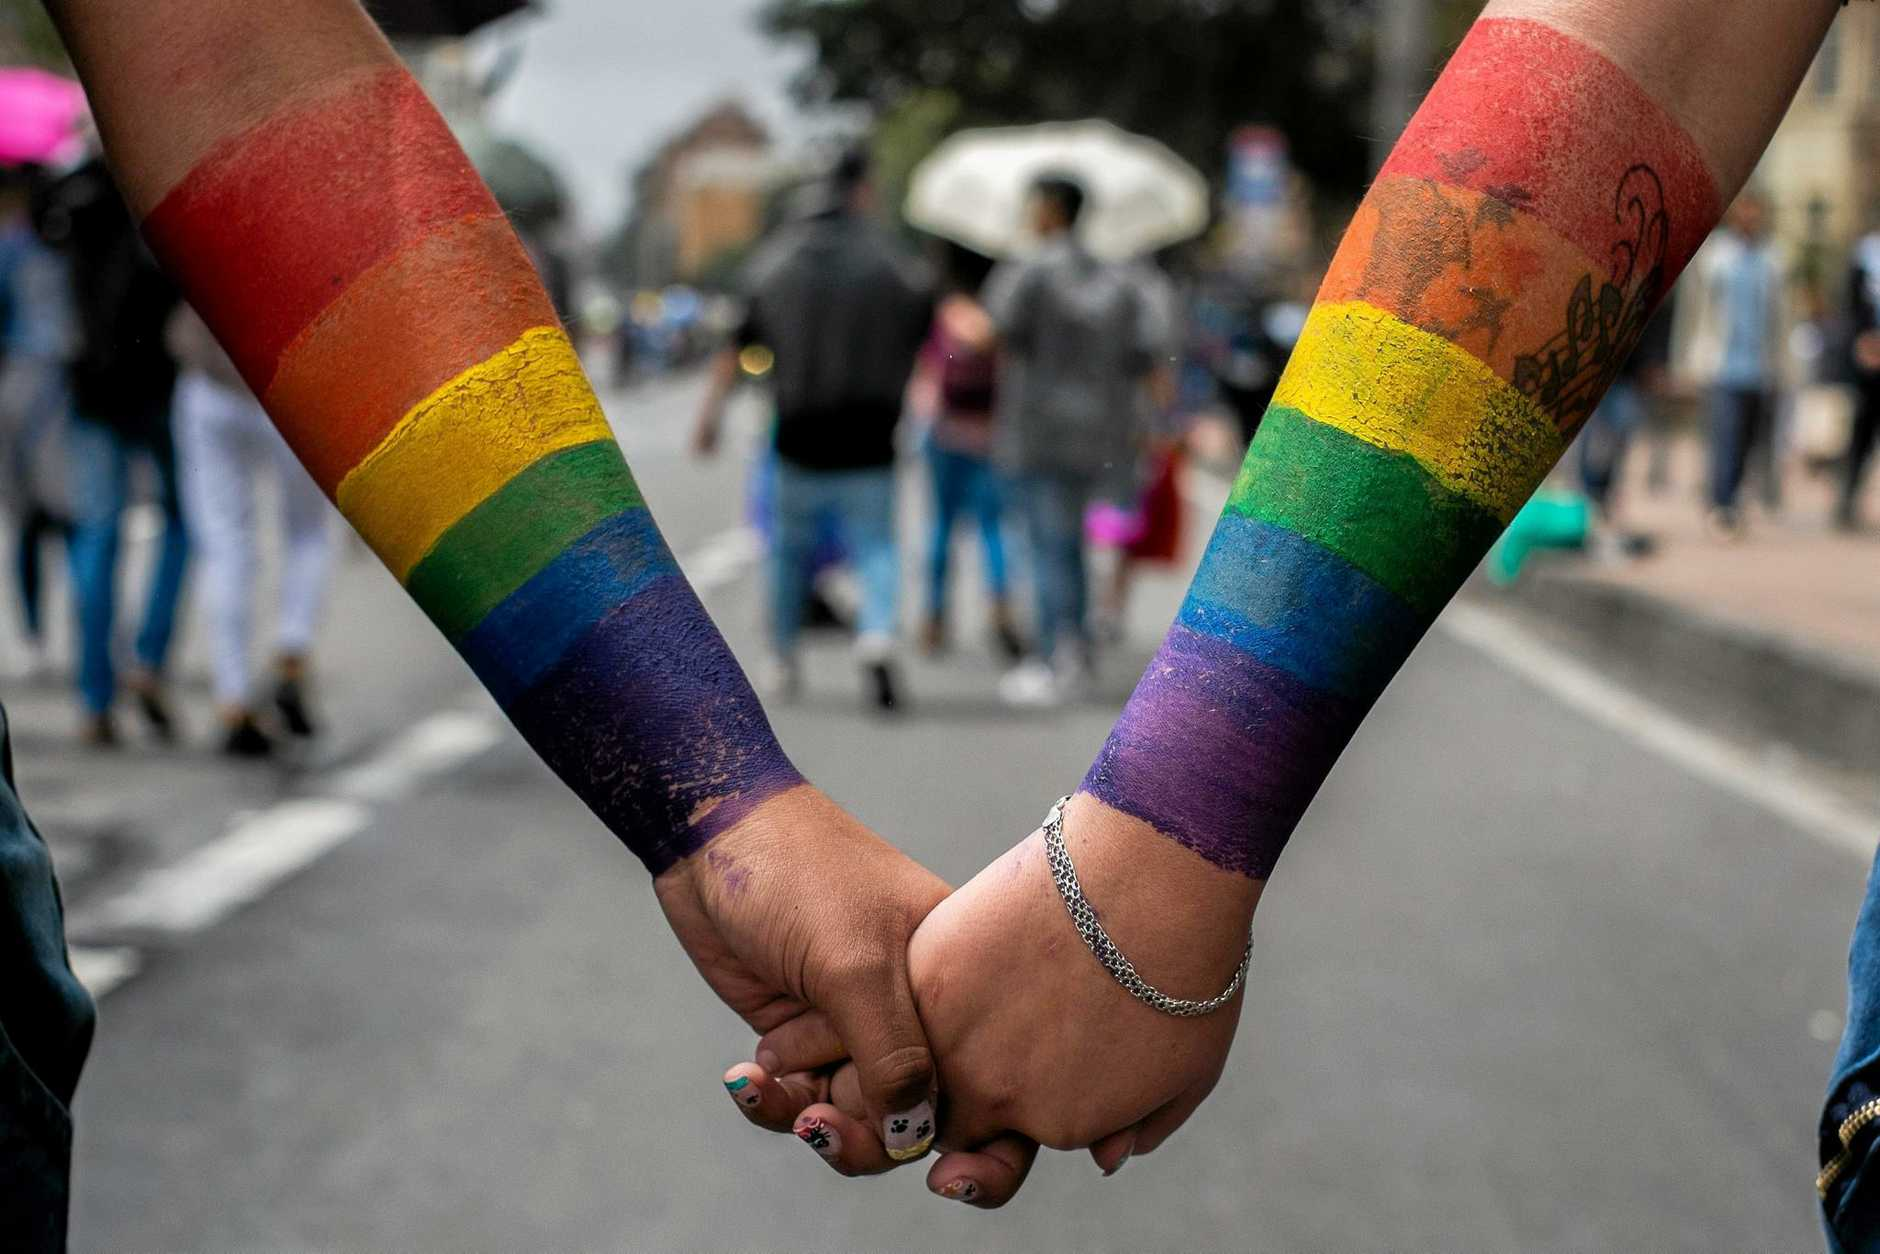 The actions of the LGBT lobby group have been disgraceful, says Kathy Sundstrom.